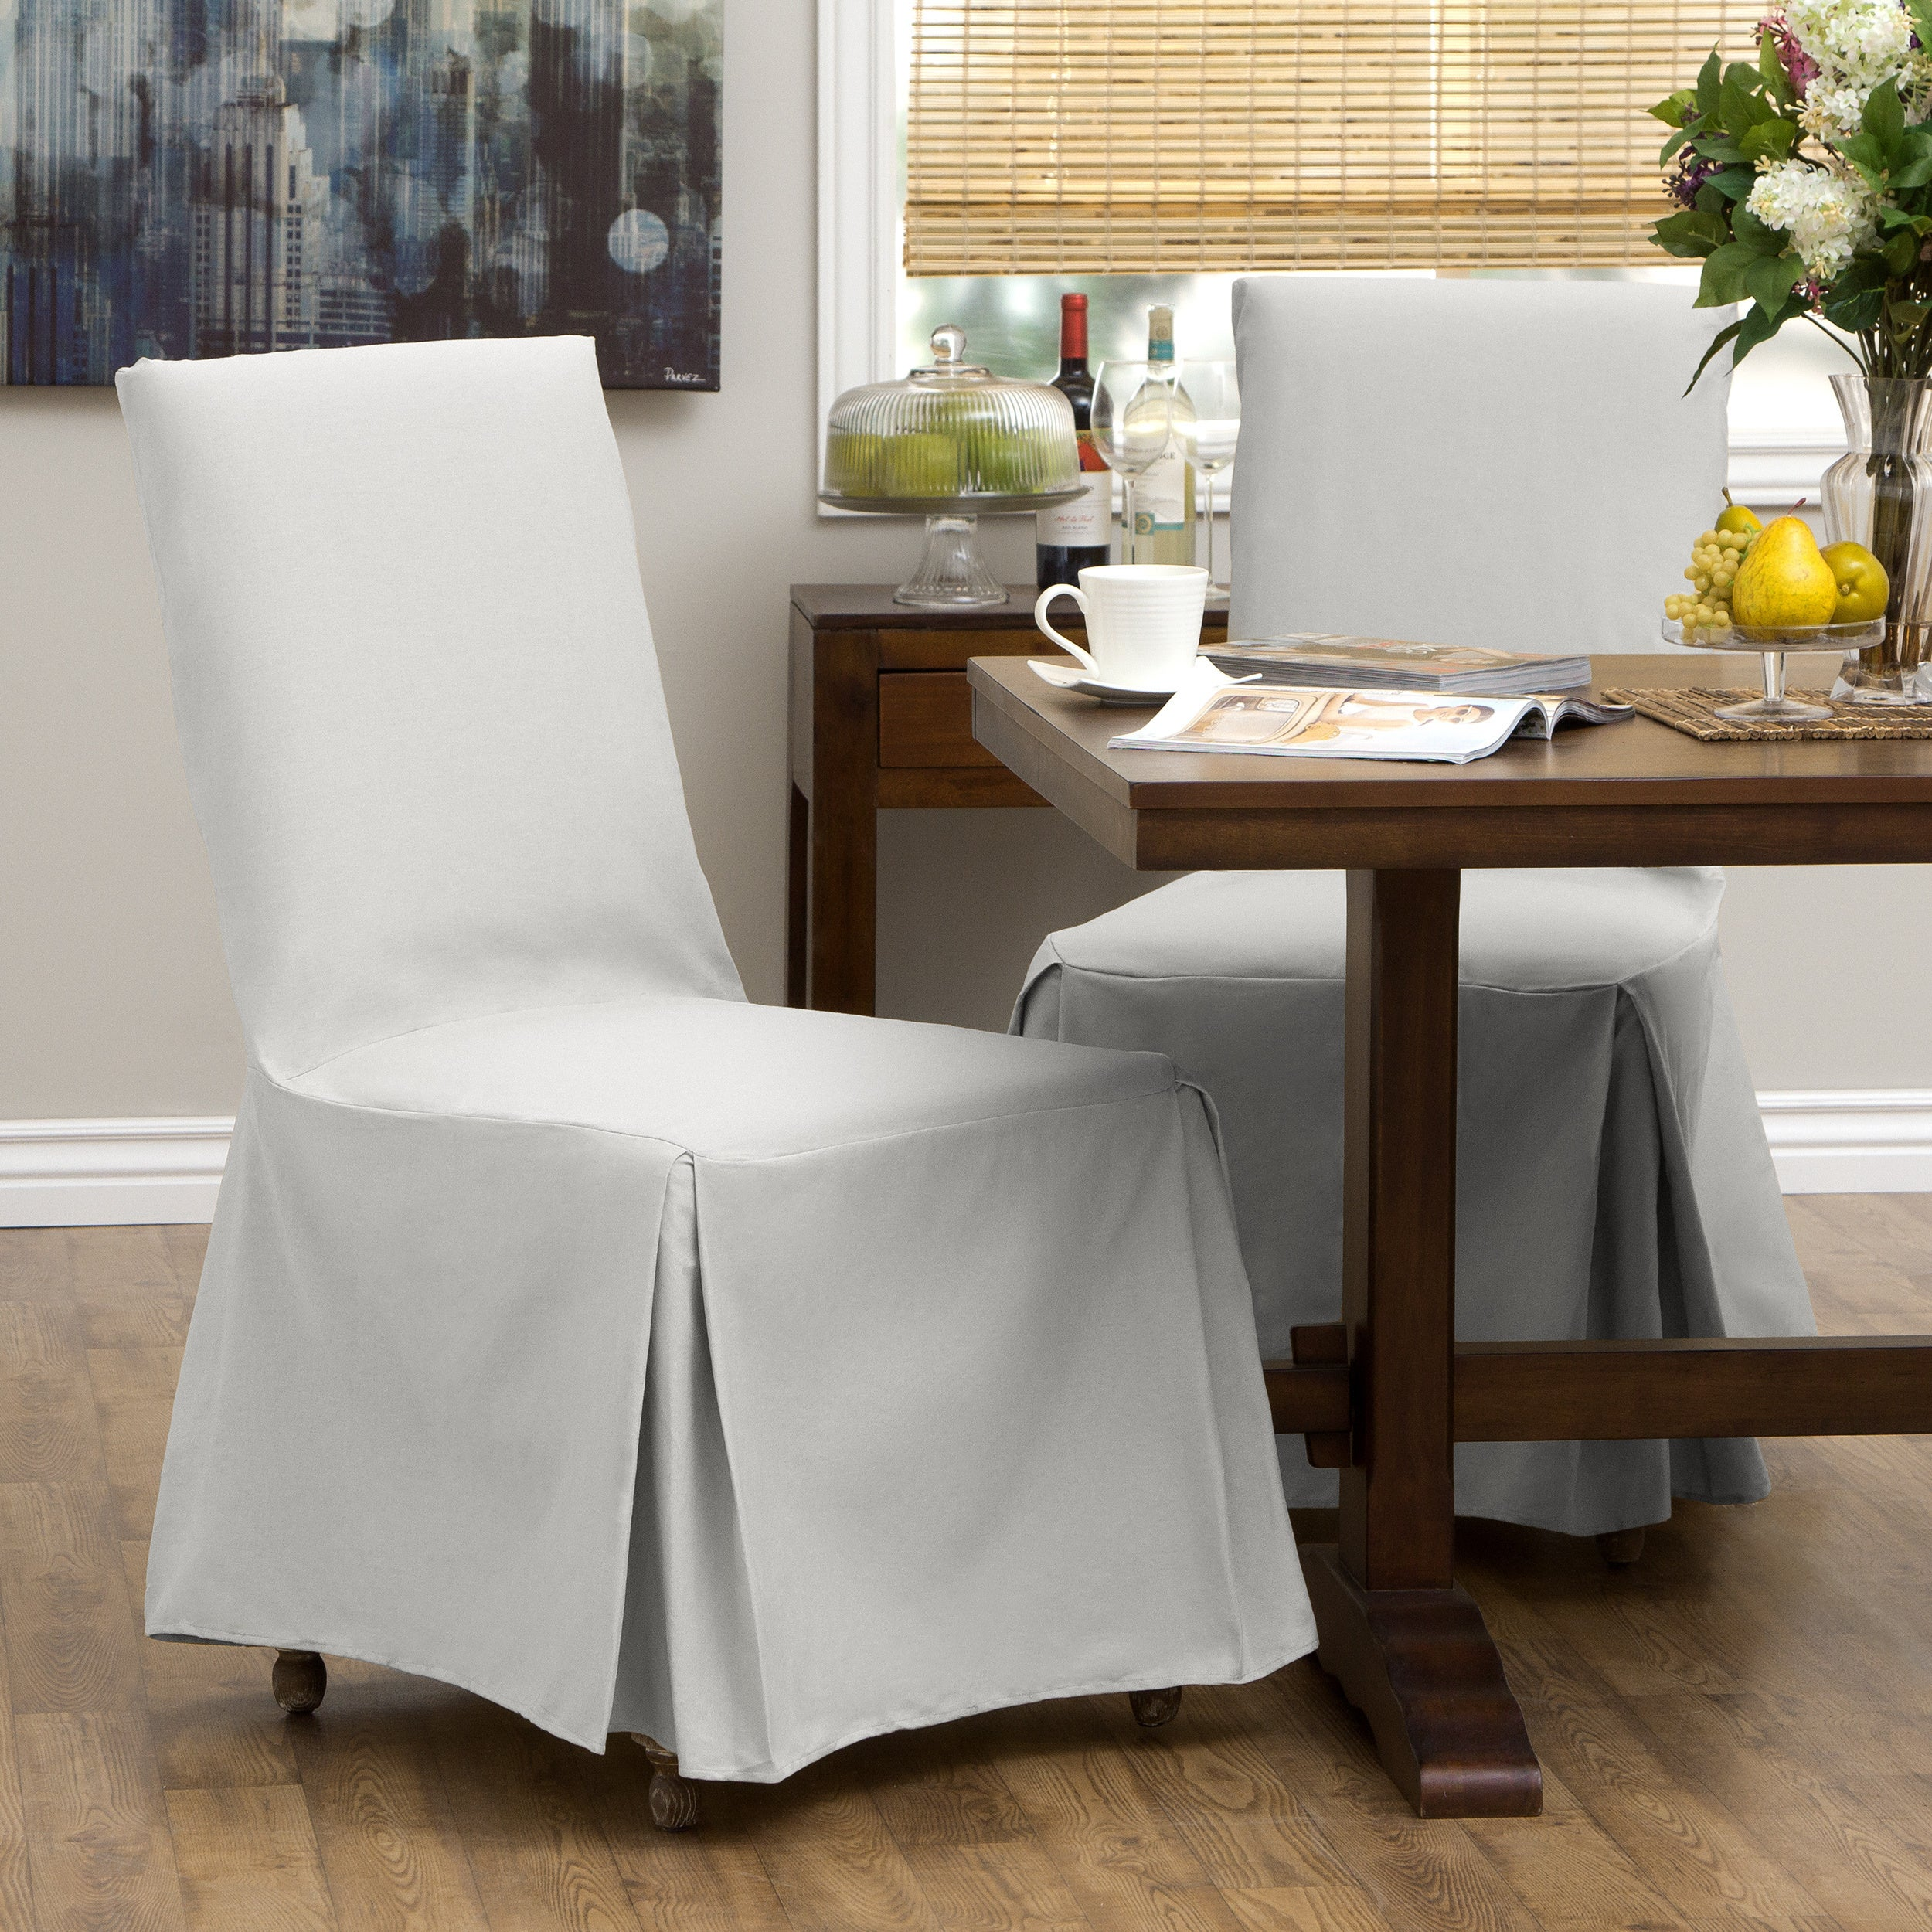 Elegant Classic Slipcovers Cotton Duck Parsons Chair Slipcover Pair   Free Shipping  Today   Overstock   10672045